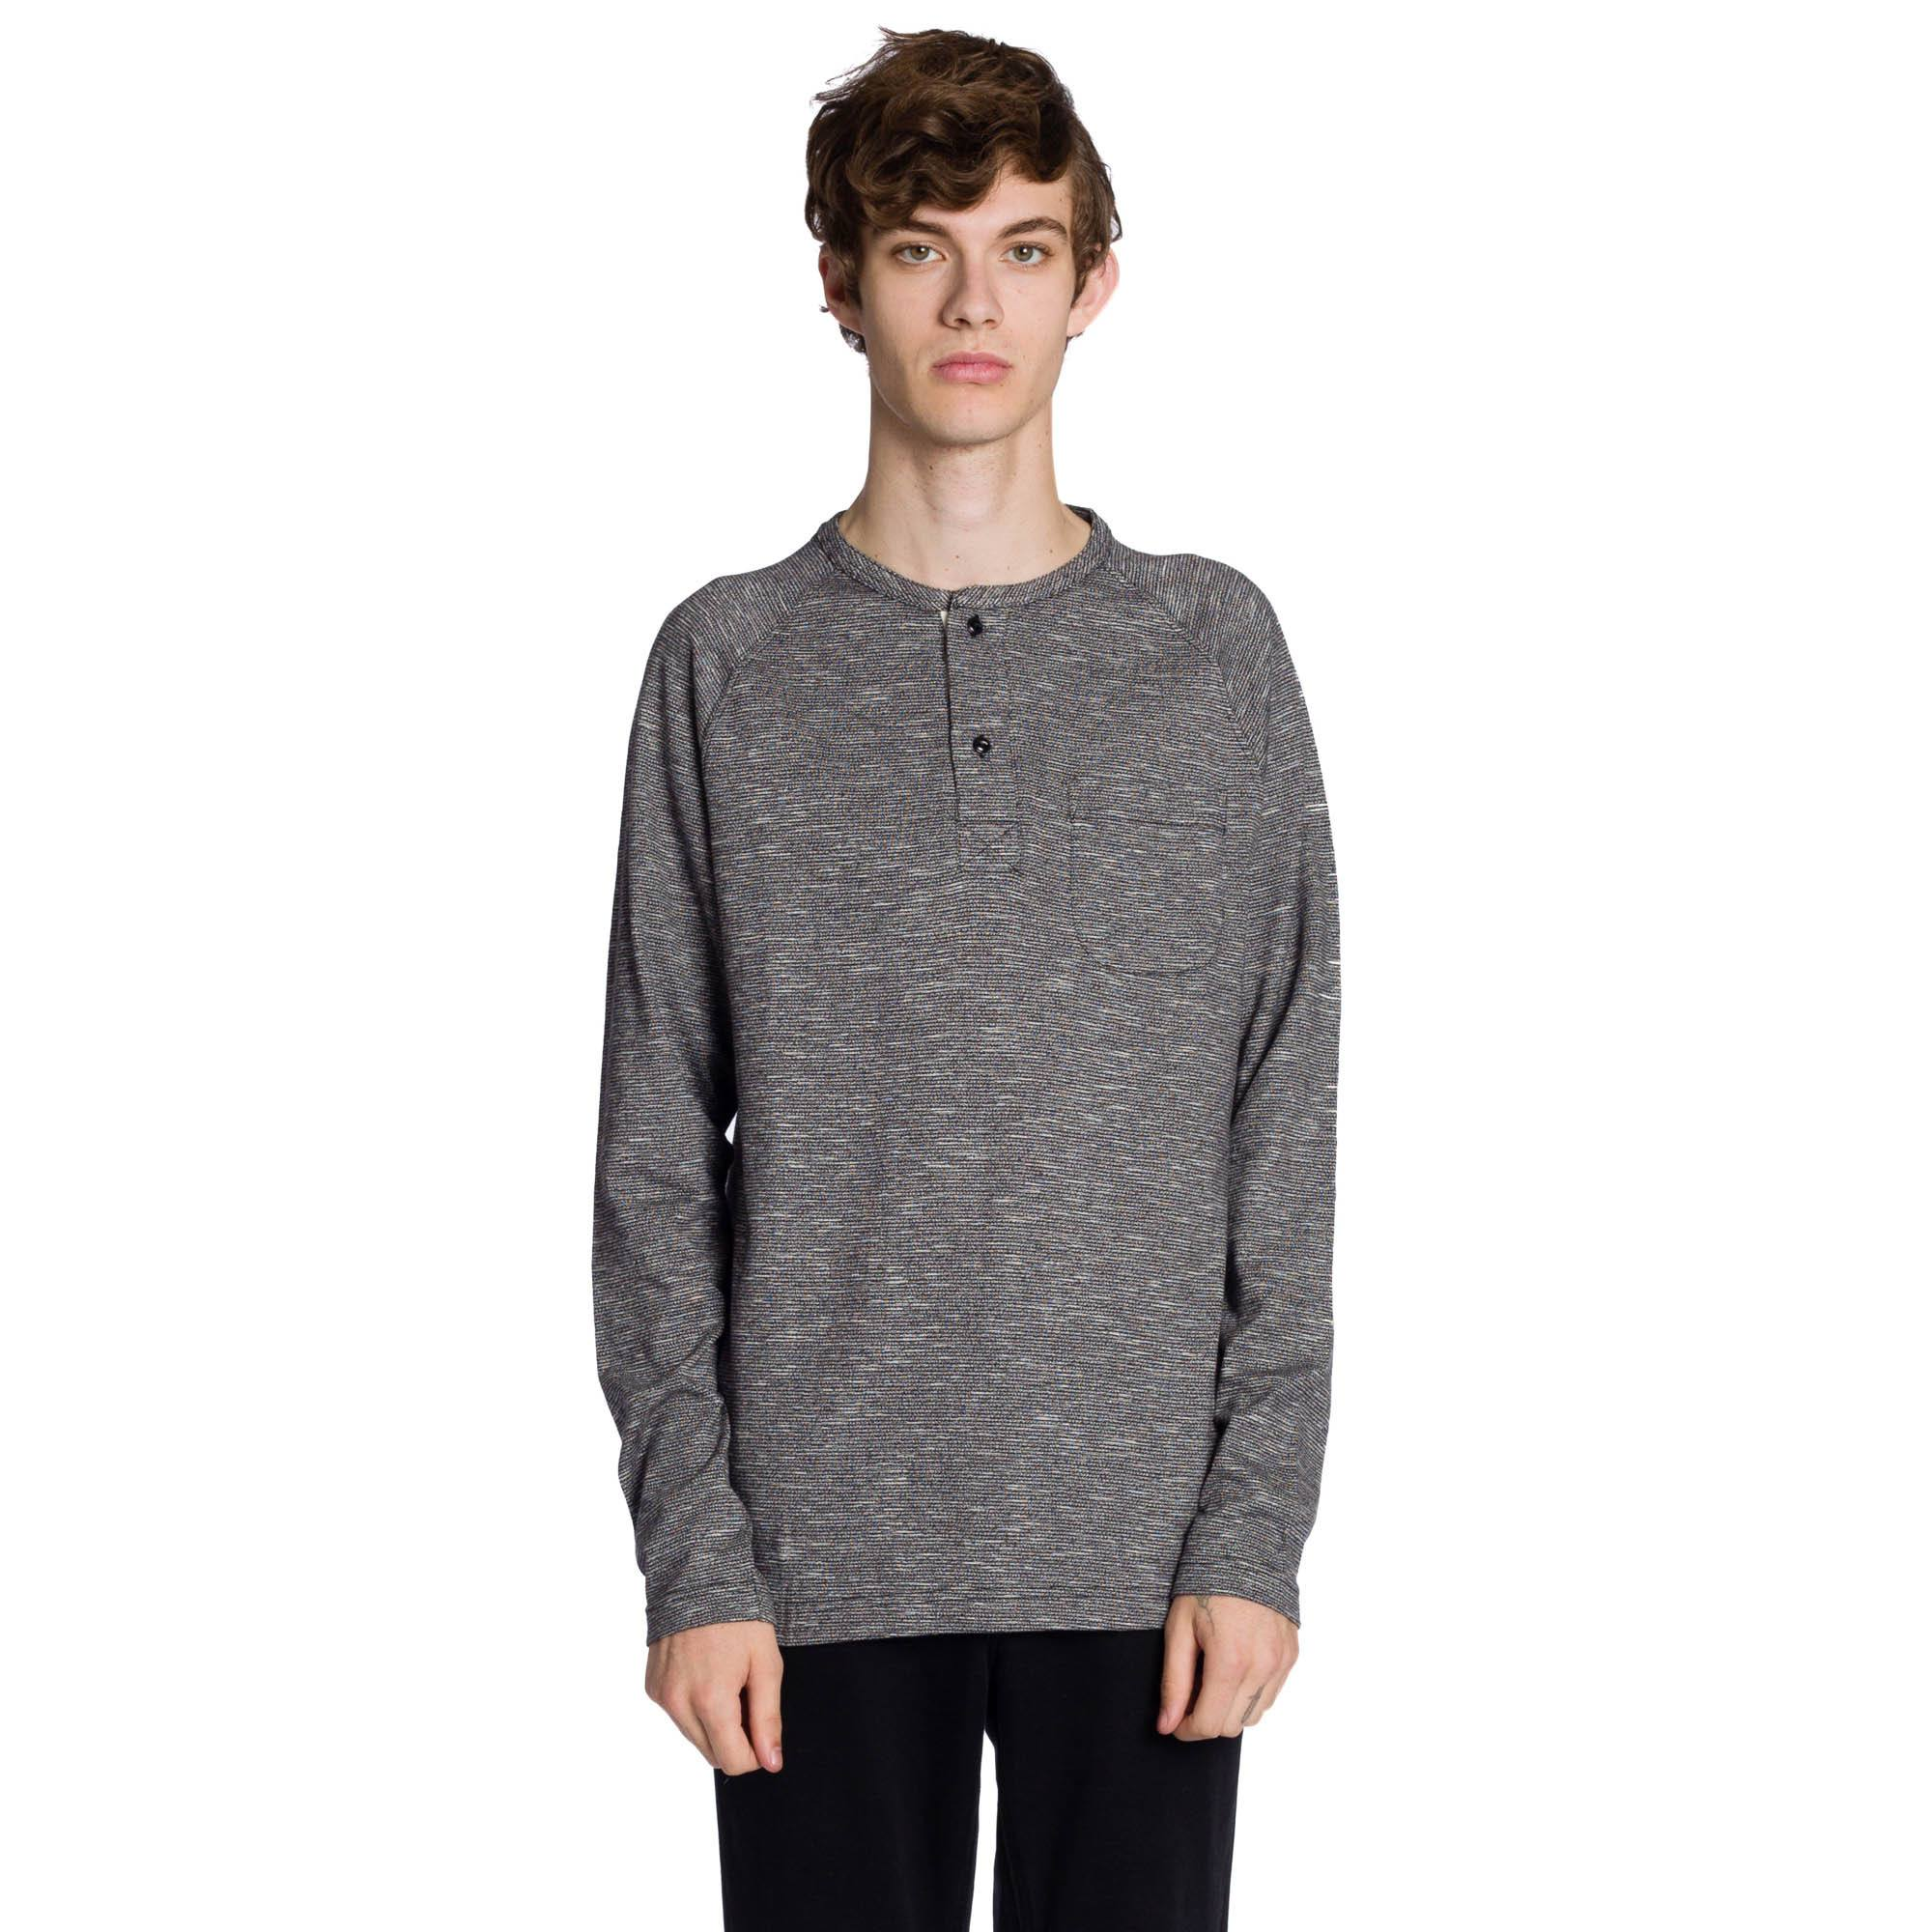 Bowie Pullover - Black